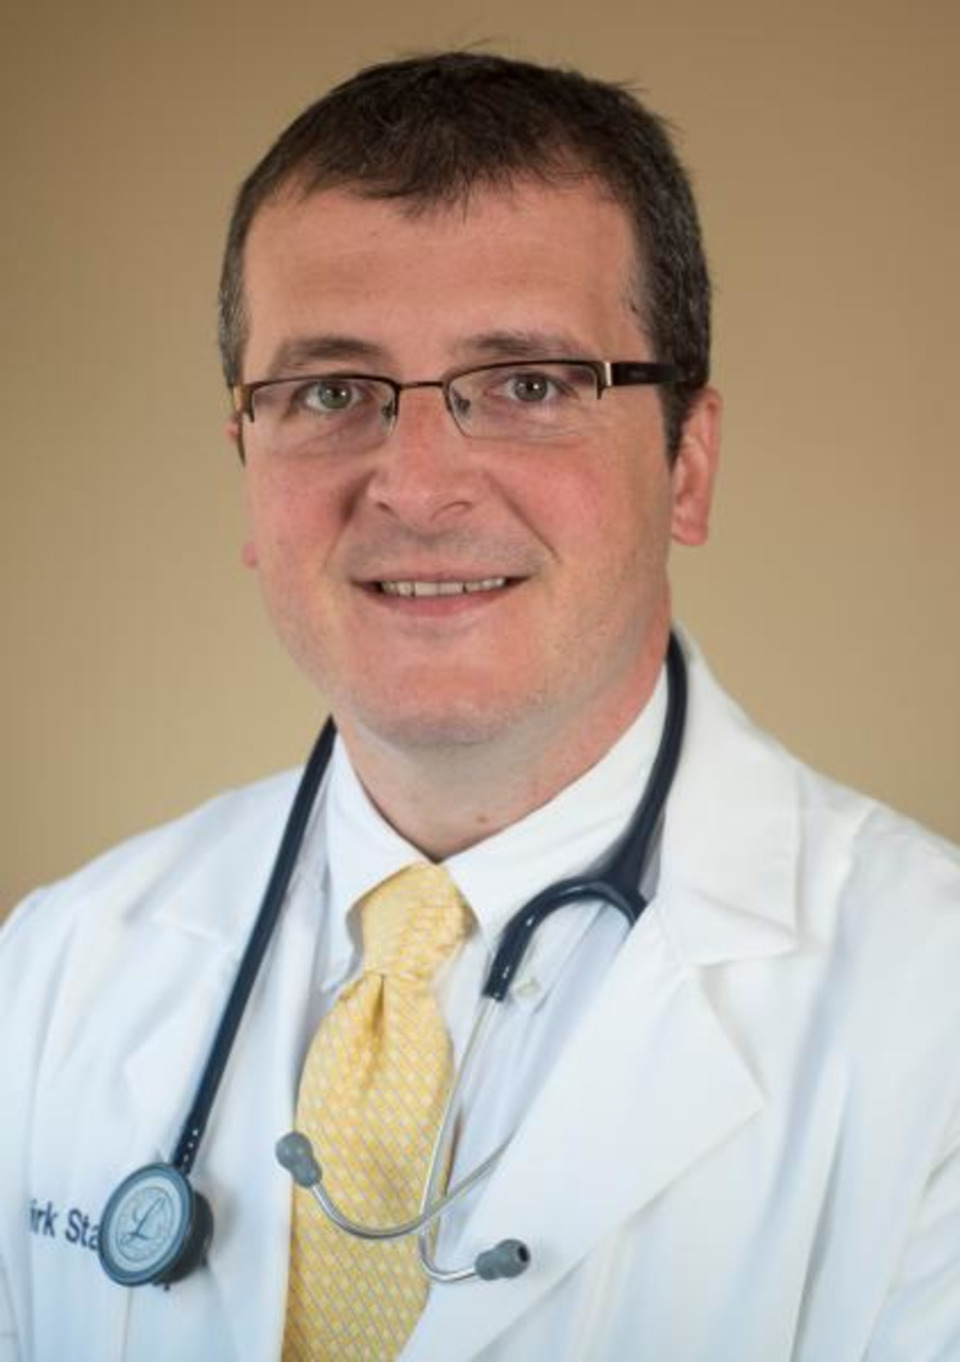 UConn Health Appoints Dirk Stanley, M D , as First CMIO to